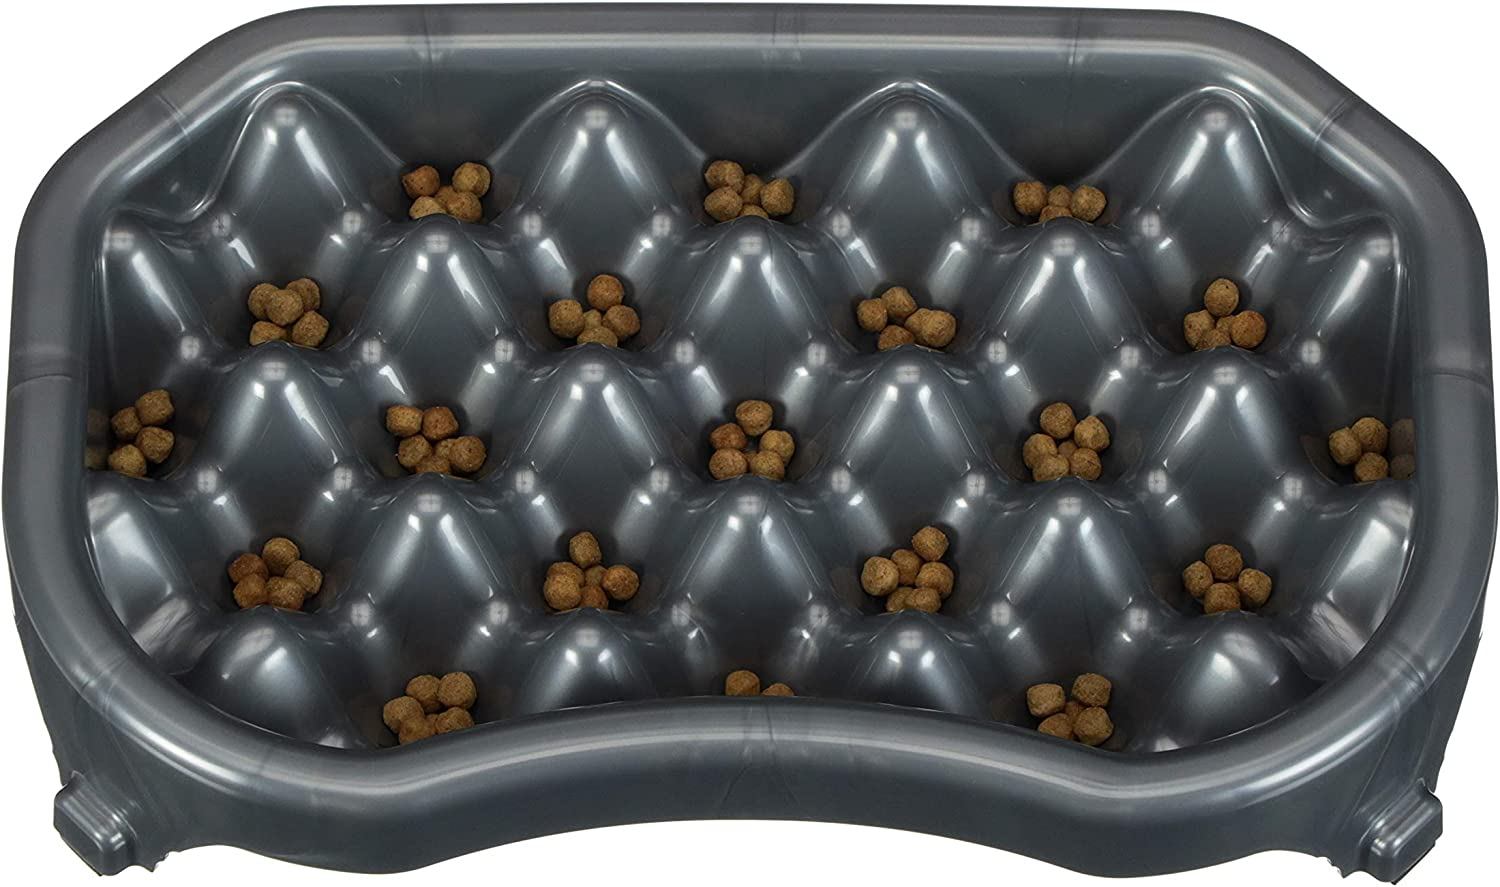 Neater Pet Brands - Neater Slow Feeder - Fun, Healthy, Stress Free Dog Bowl Helps Stop Bloat Prevents Obesity Improves Digestion (2.5 Cups, Gunmetal)